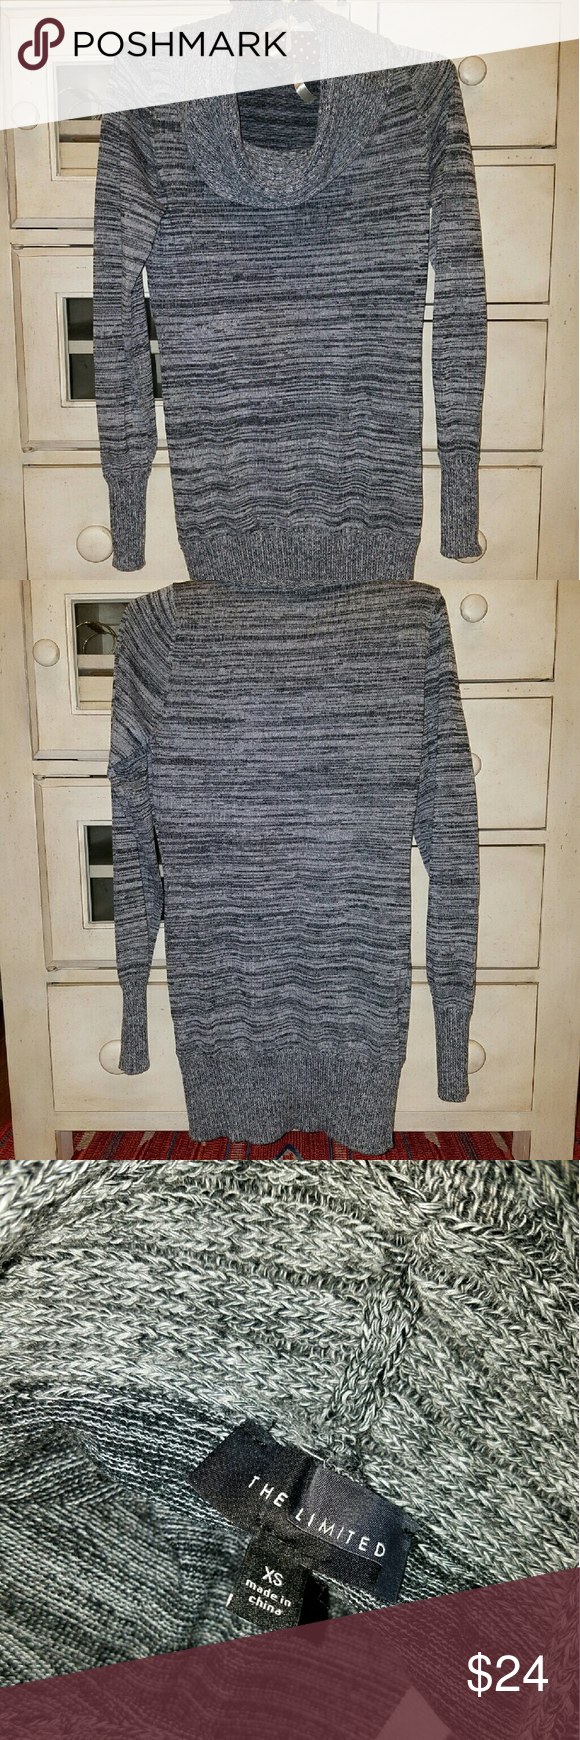 NWOT The Limited Cowl Neck Sweater/Tunic NWOT The Limited Cowl Neck sweater/tunic. Size XSMALL. Has never been worn. The Limited Sweaters